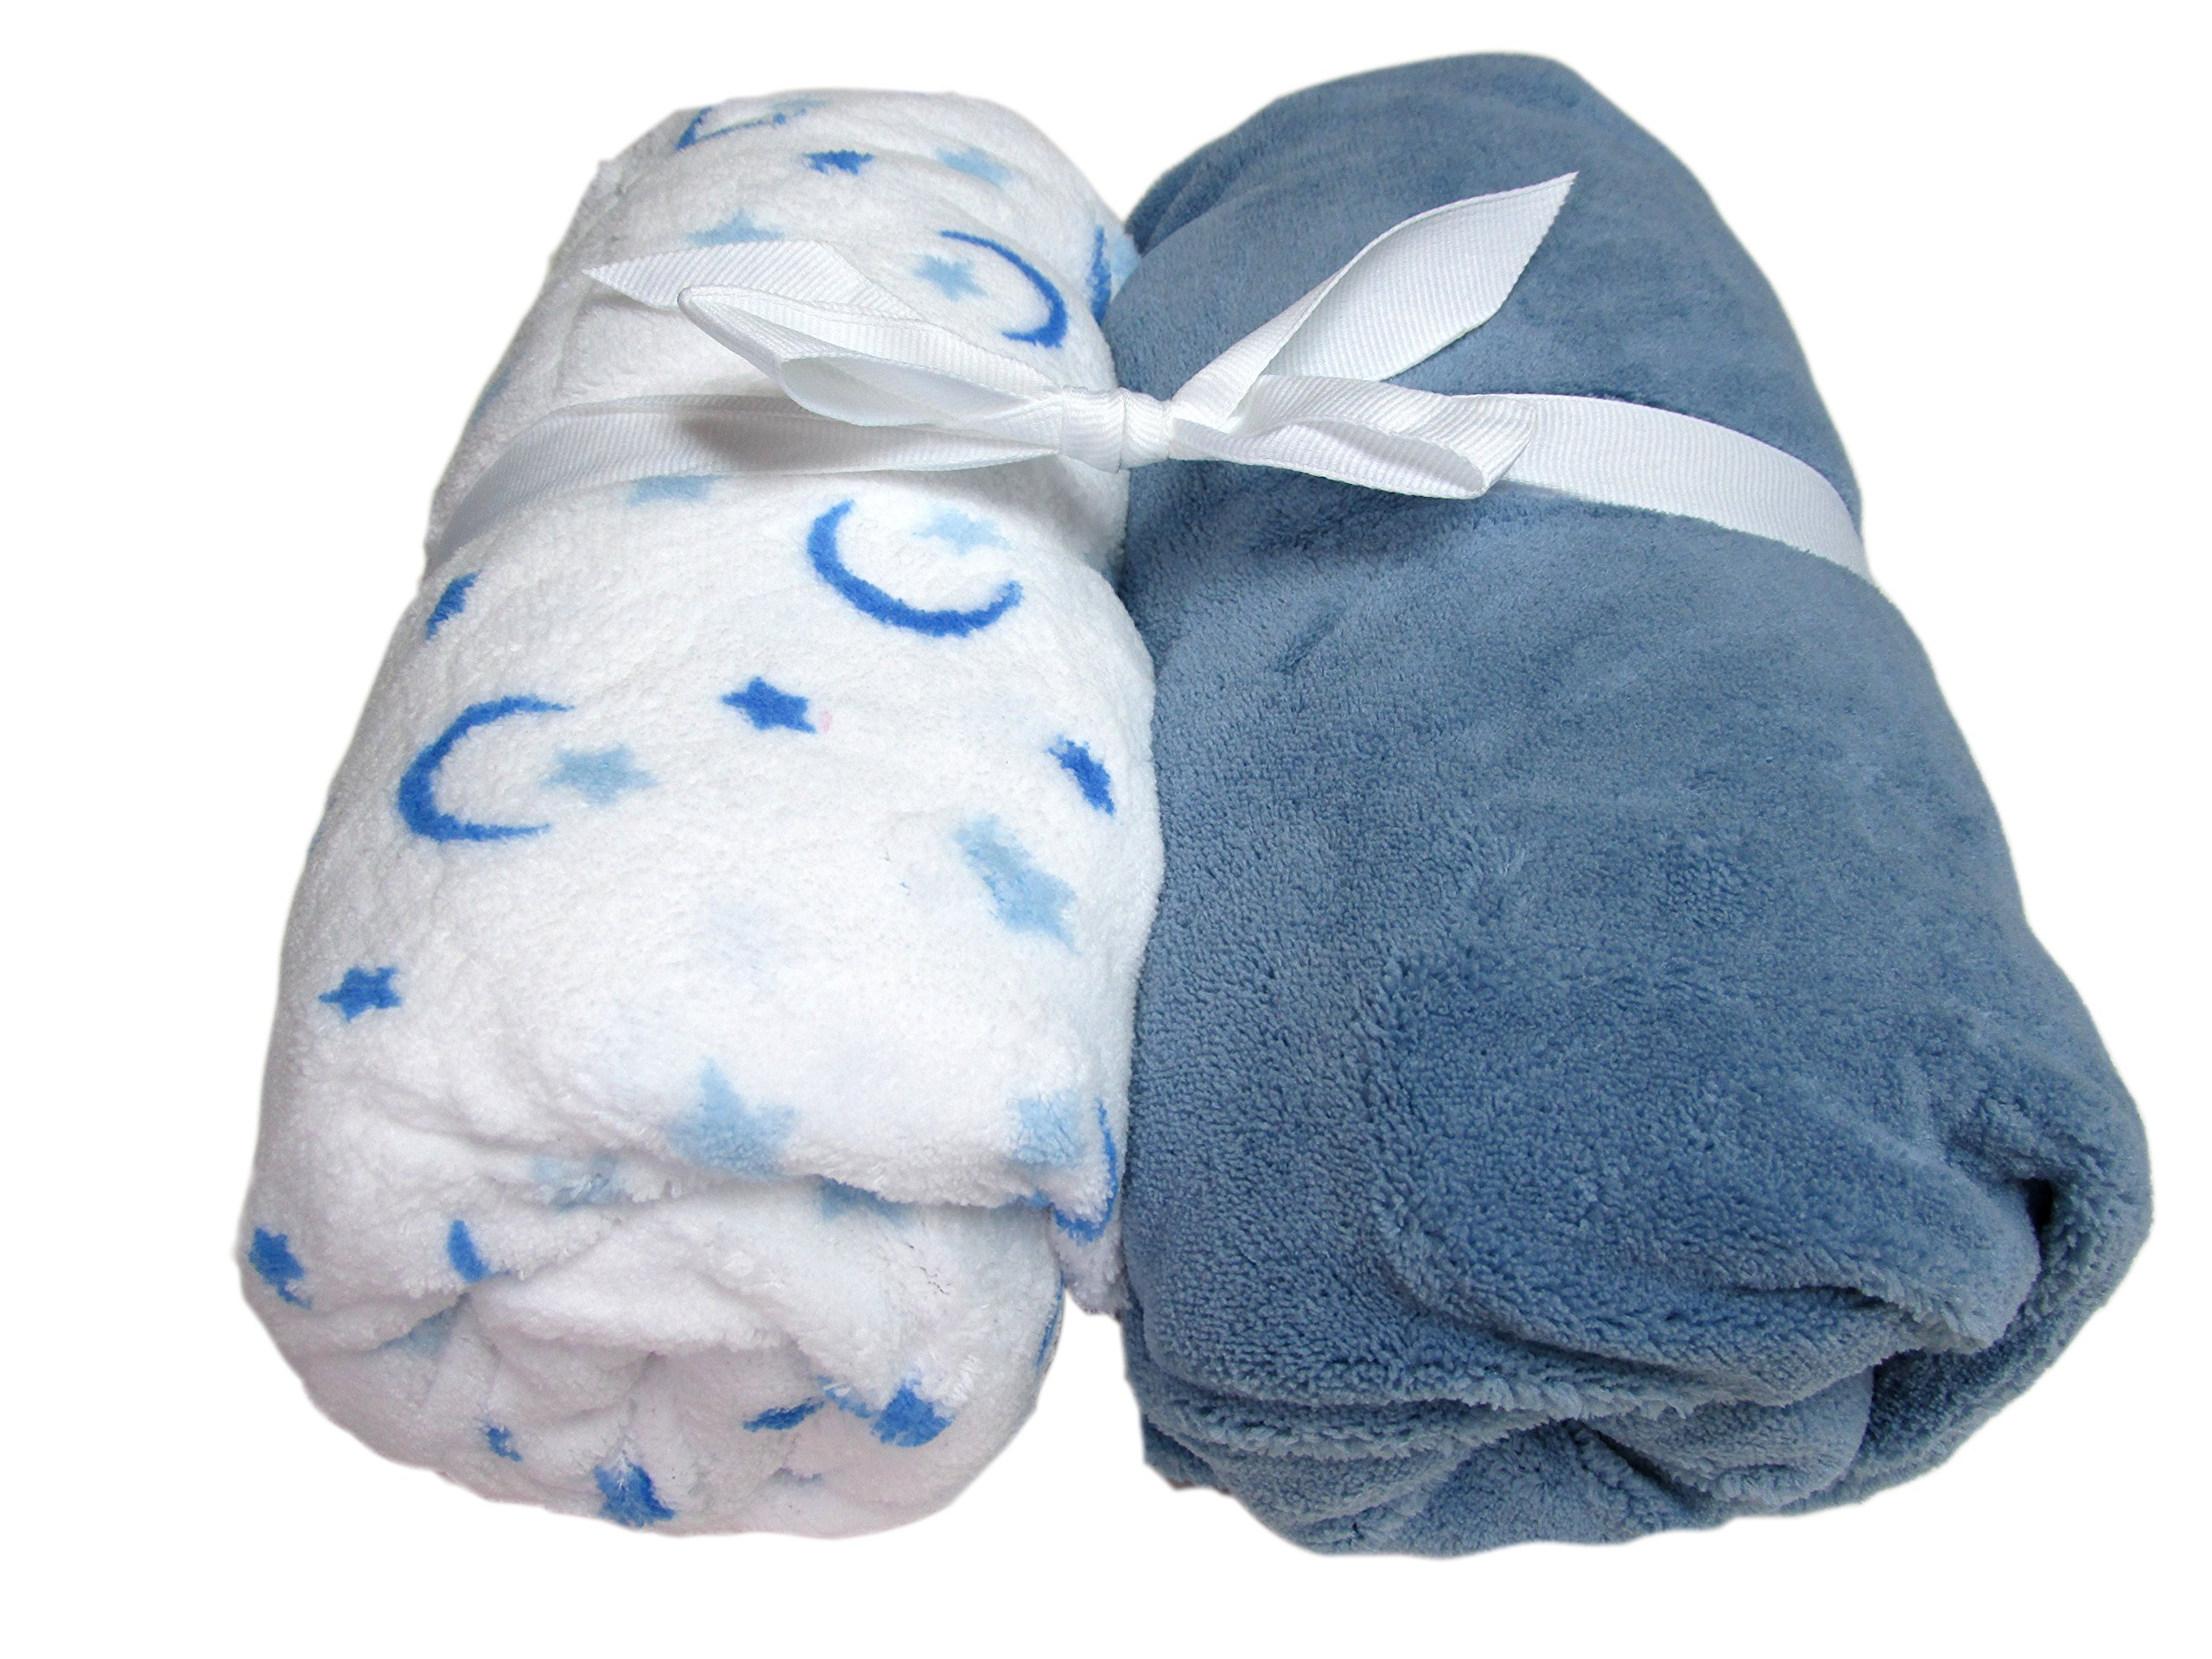 Cozy Fleece Microplush Crib Sheets, Blue/White with Moon and Stars